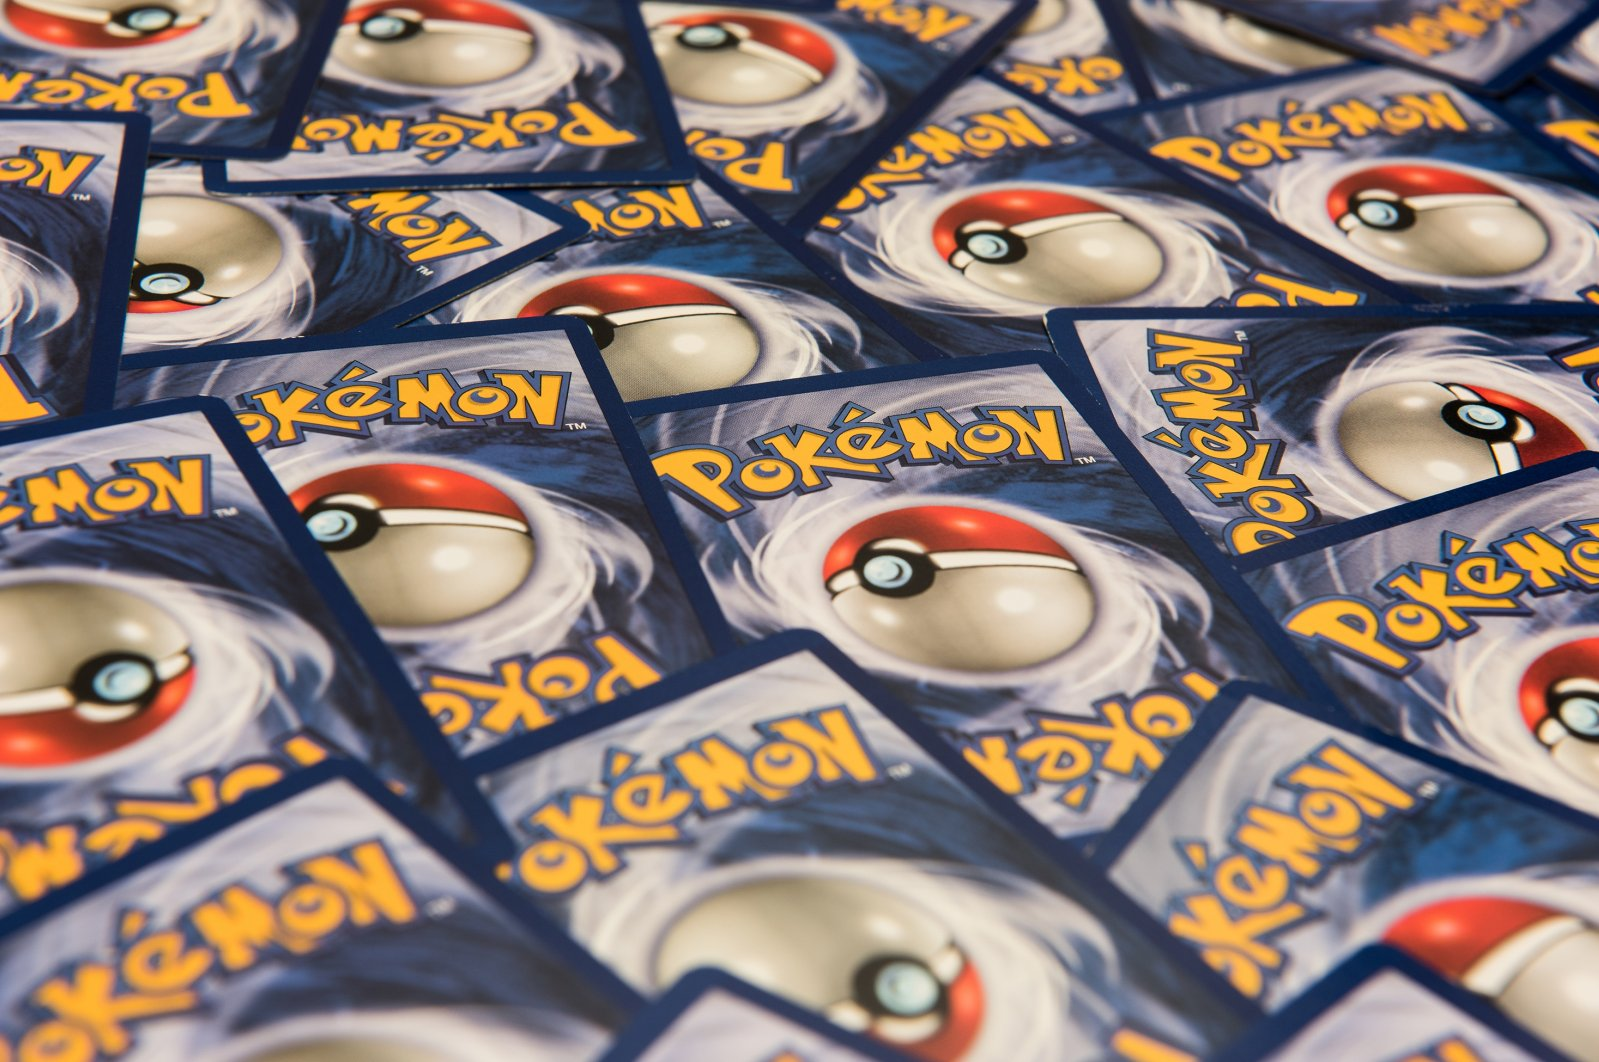 The back side of Pokemon trading cards can be seen, New York City, USA, July 12, 2016. (Shutterstock Photo)